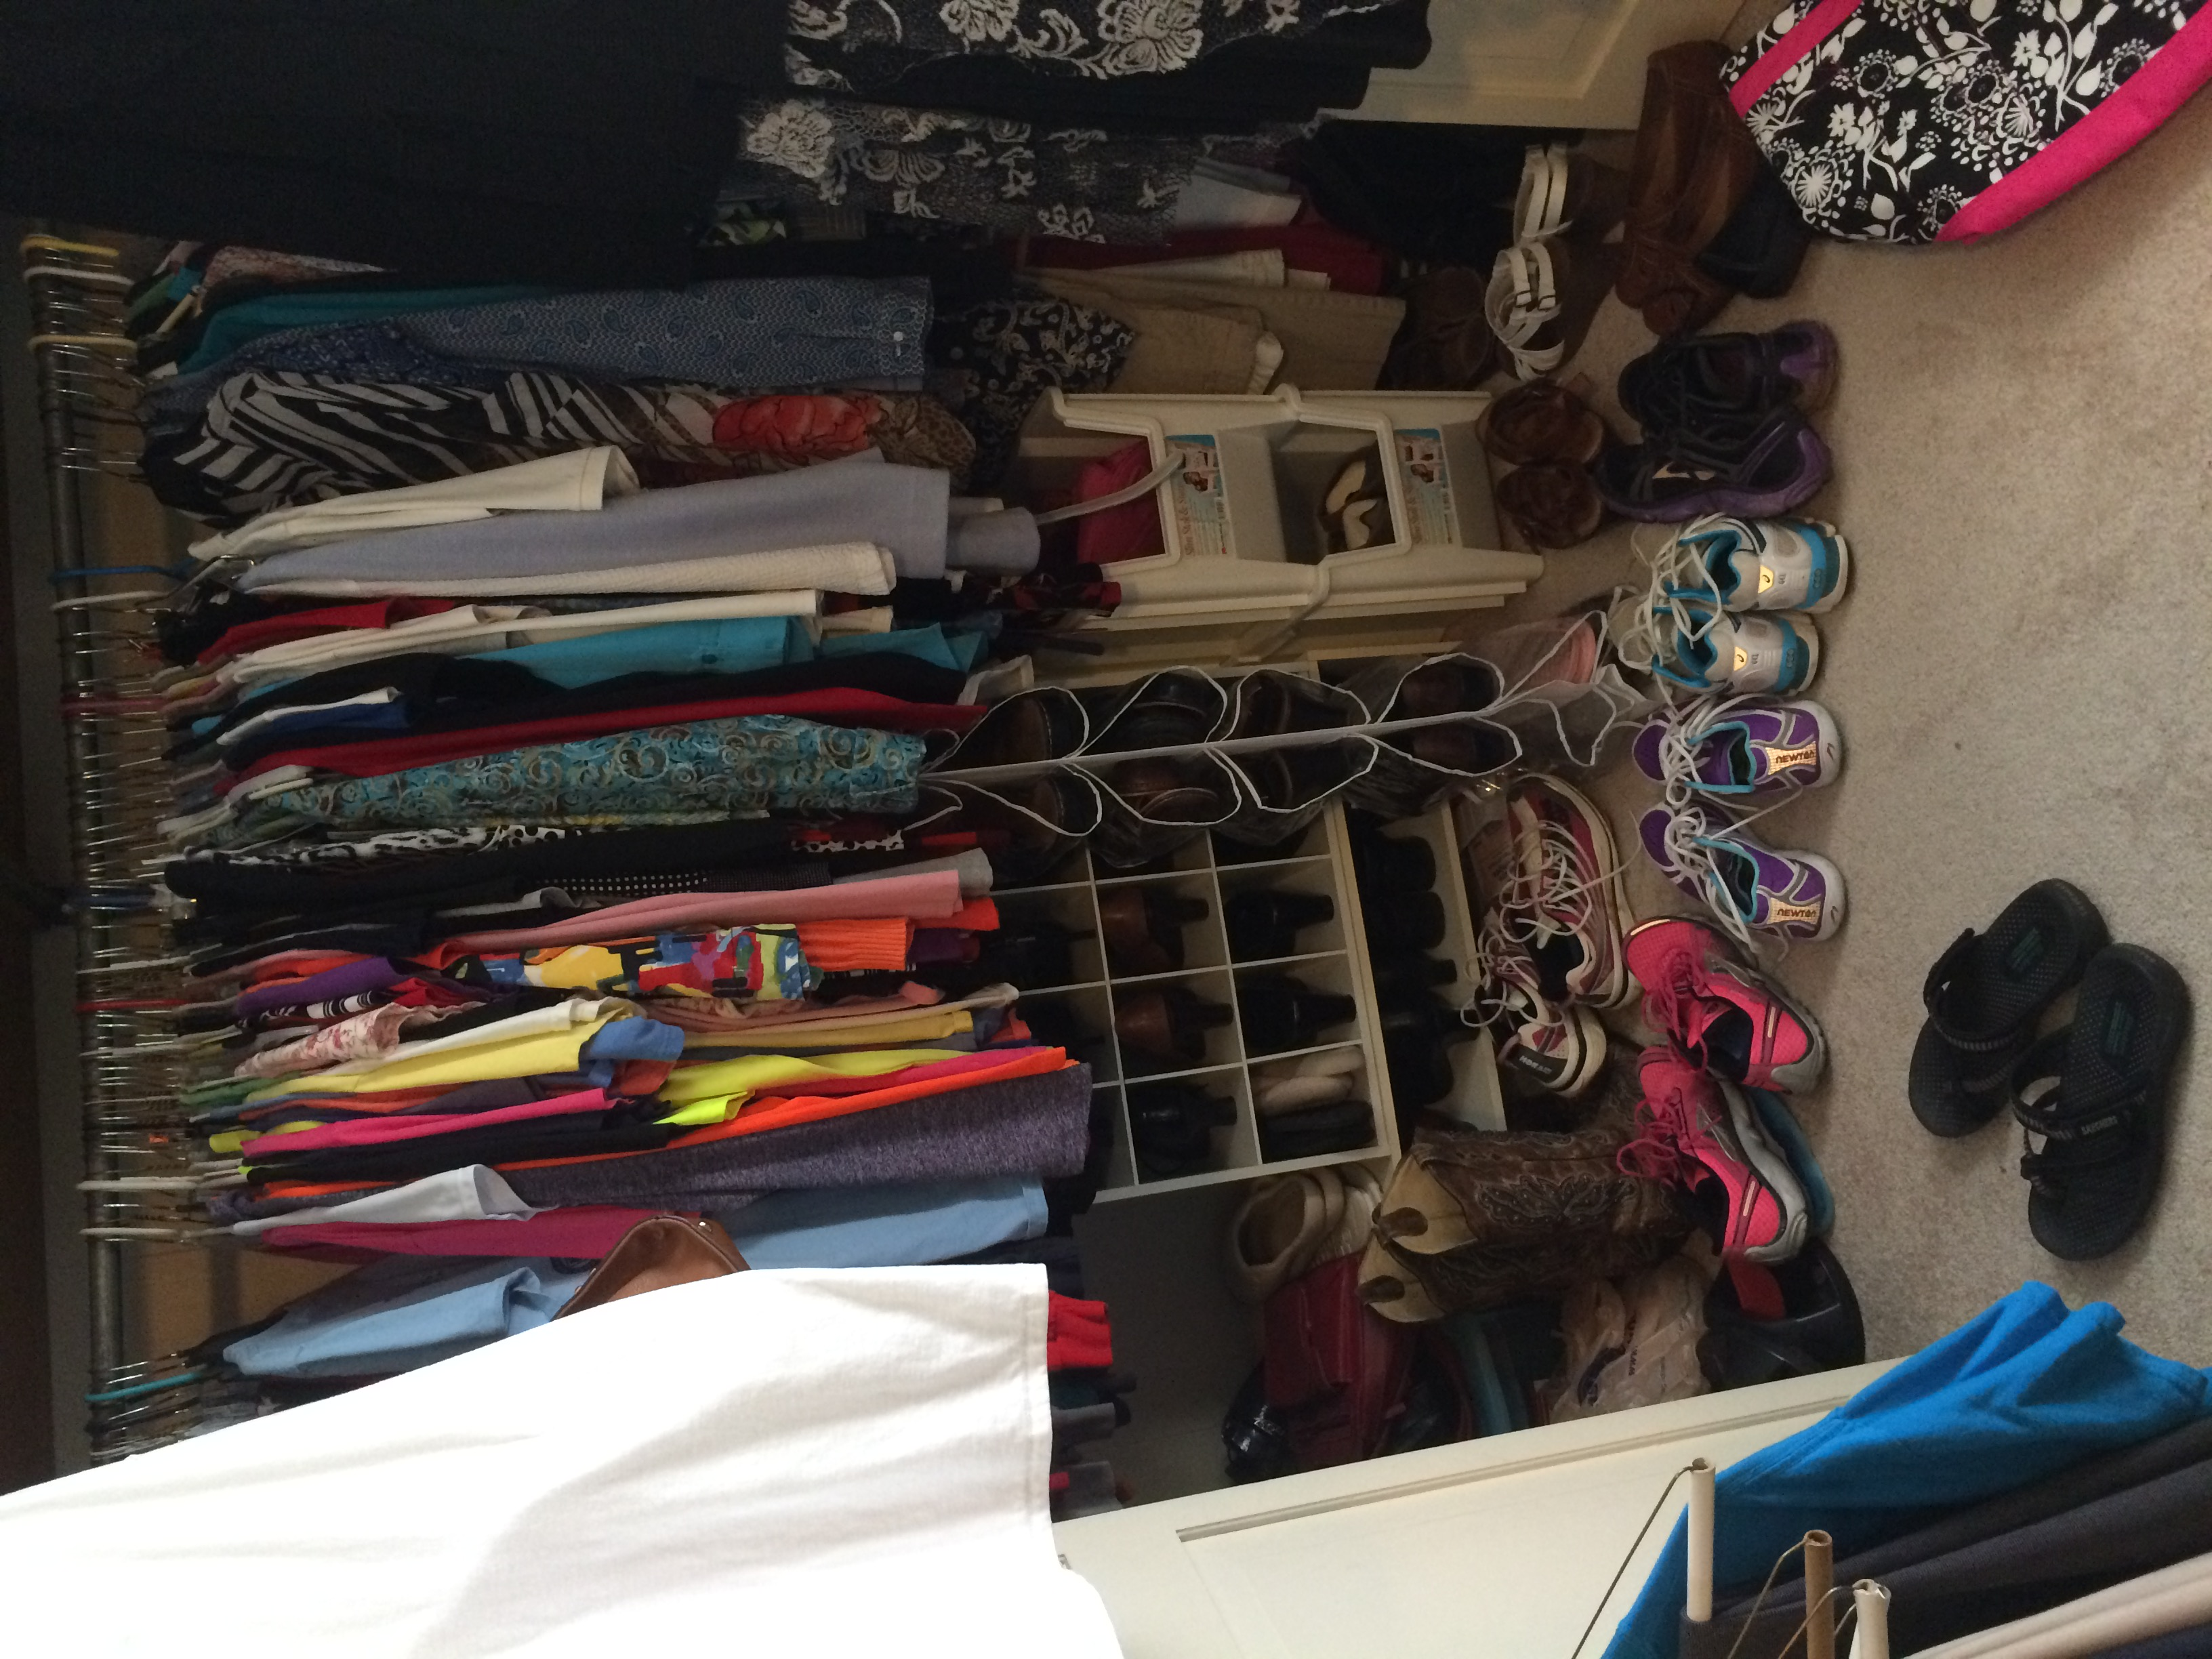 This chick has a lot of running shoes, no? (But you should see her husband's collection!)